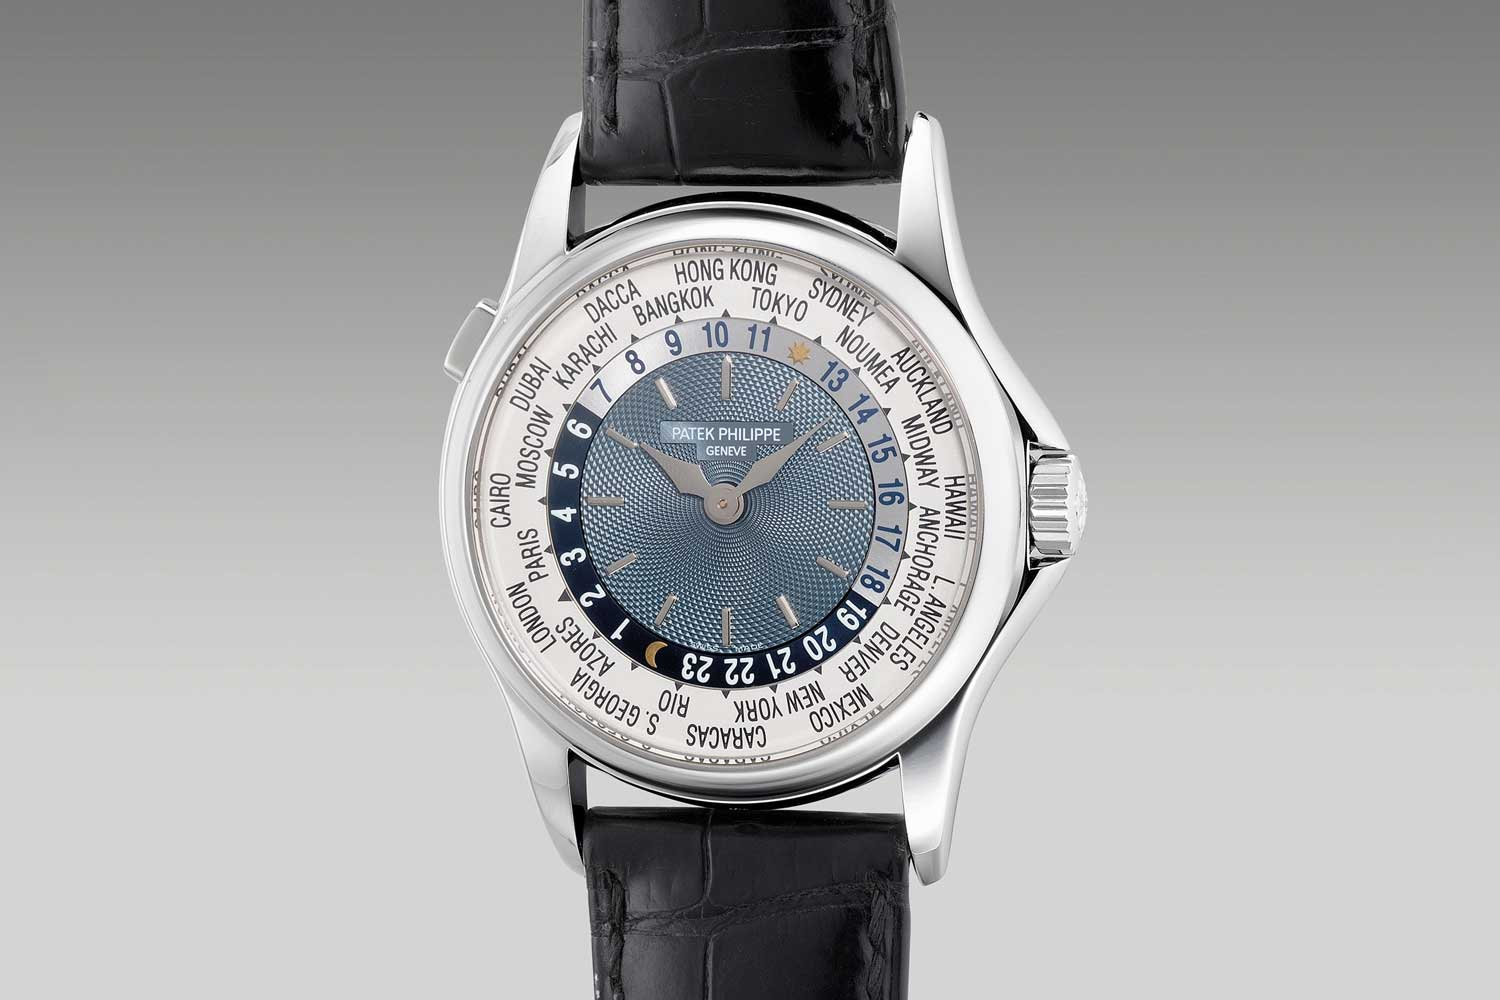 Introduced at the Baselworld fair in 2000, the ref. 5110 was a subtle nod to the reference 96 HU